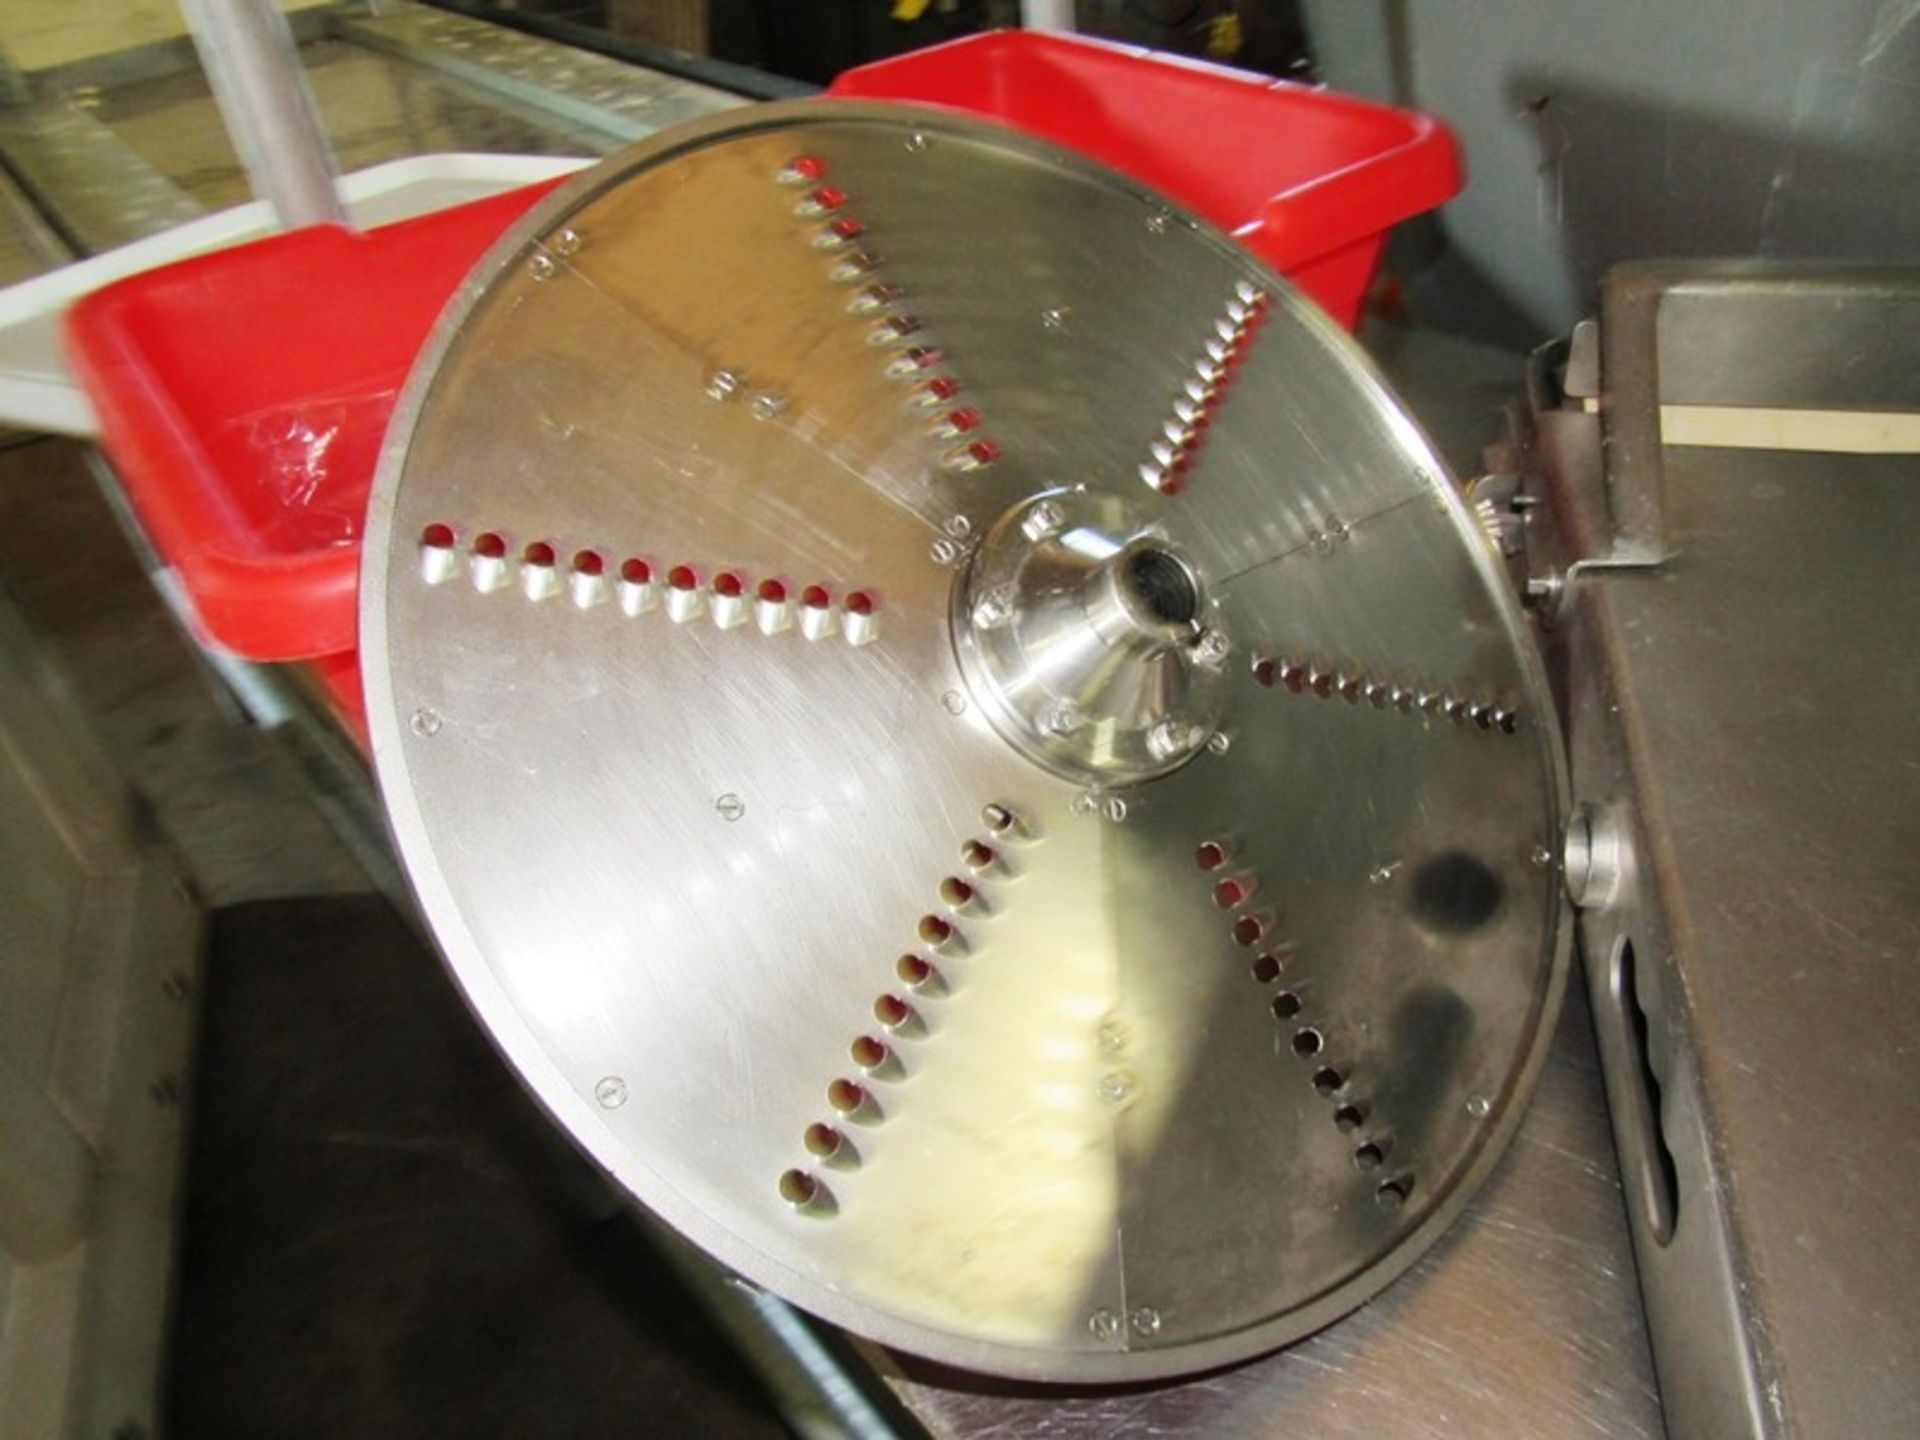 """Lot 16 - Treif Mdl. Argon Dicer, Ser. #410005.70131.106439, setup with 1/2"""" X 1 3/8"""" dicing head. 12"""" Wide"""